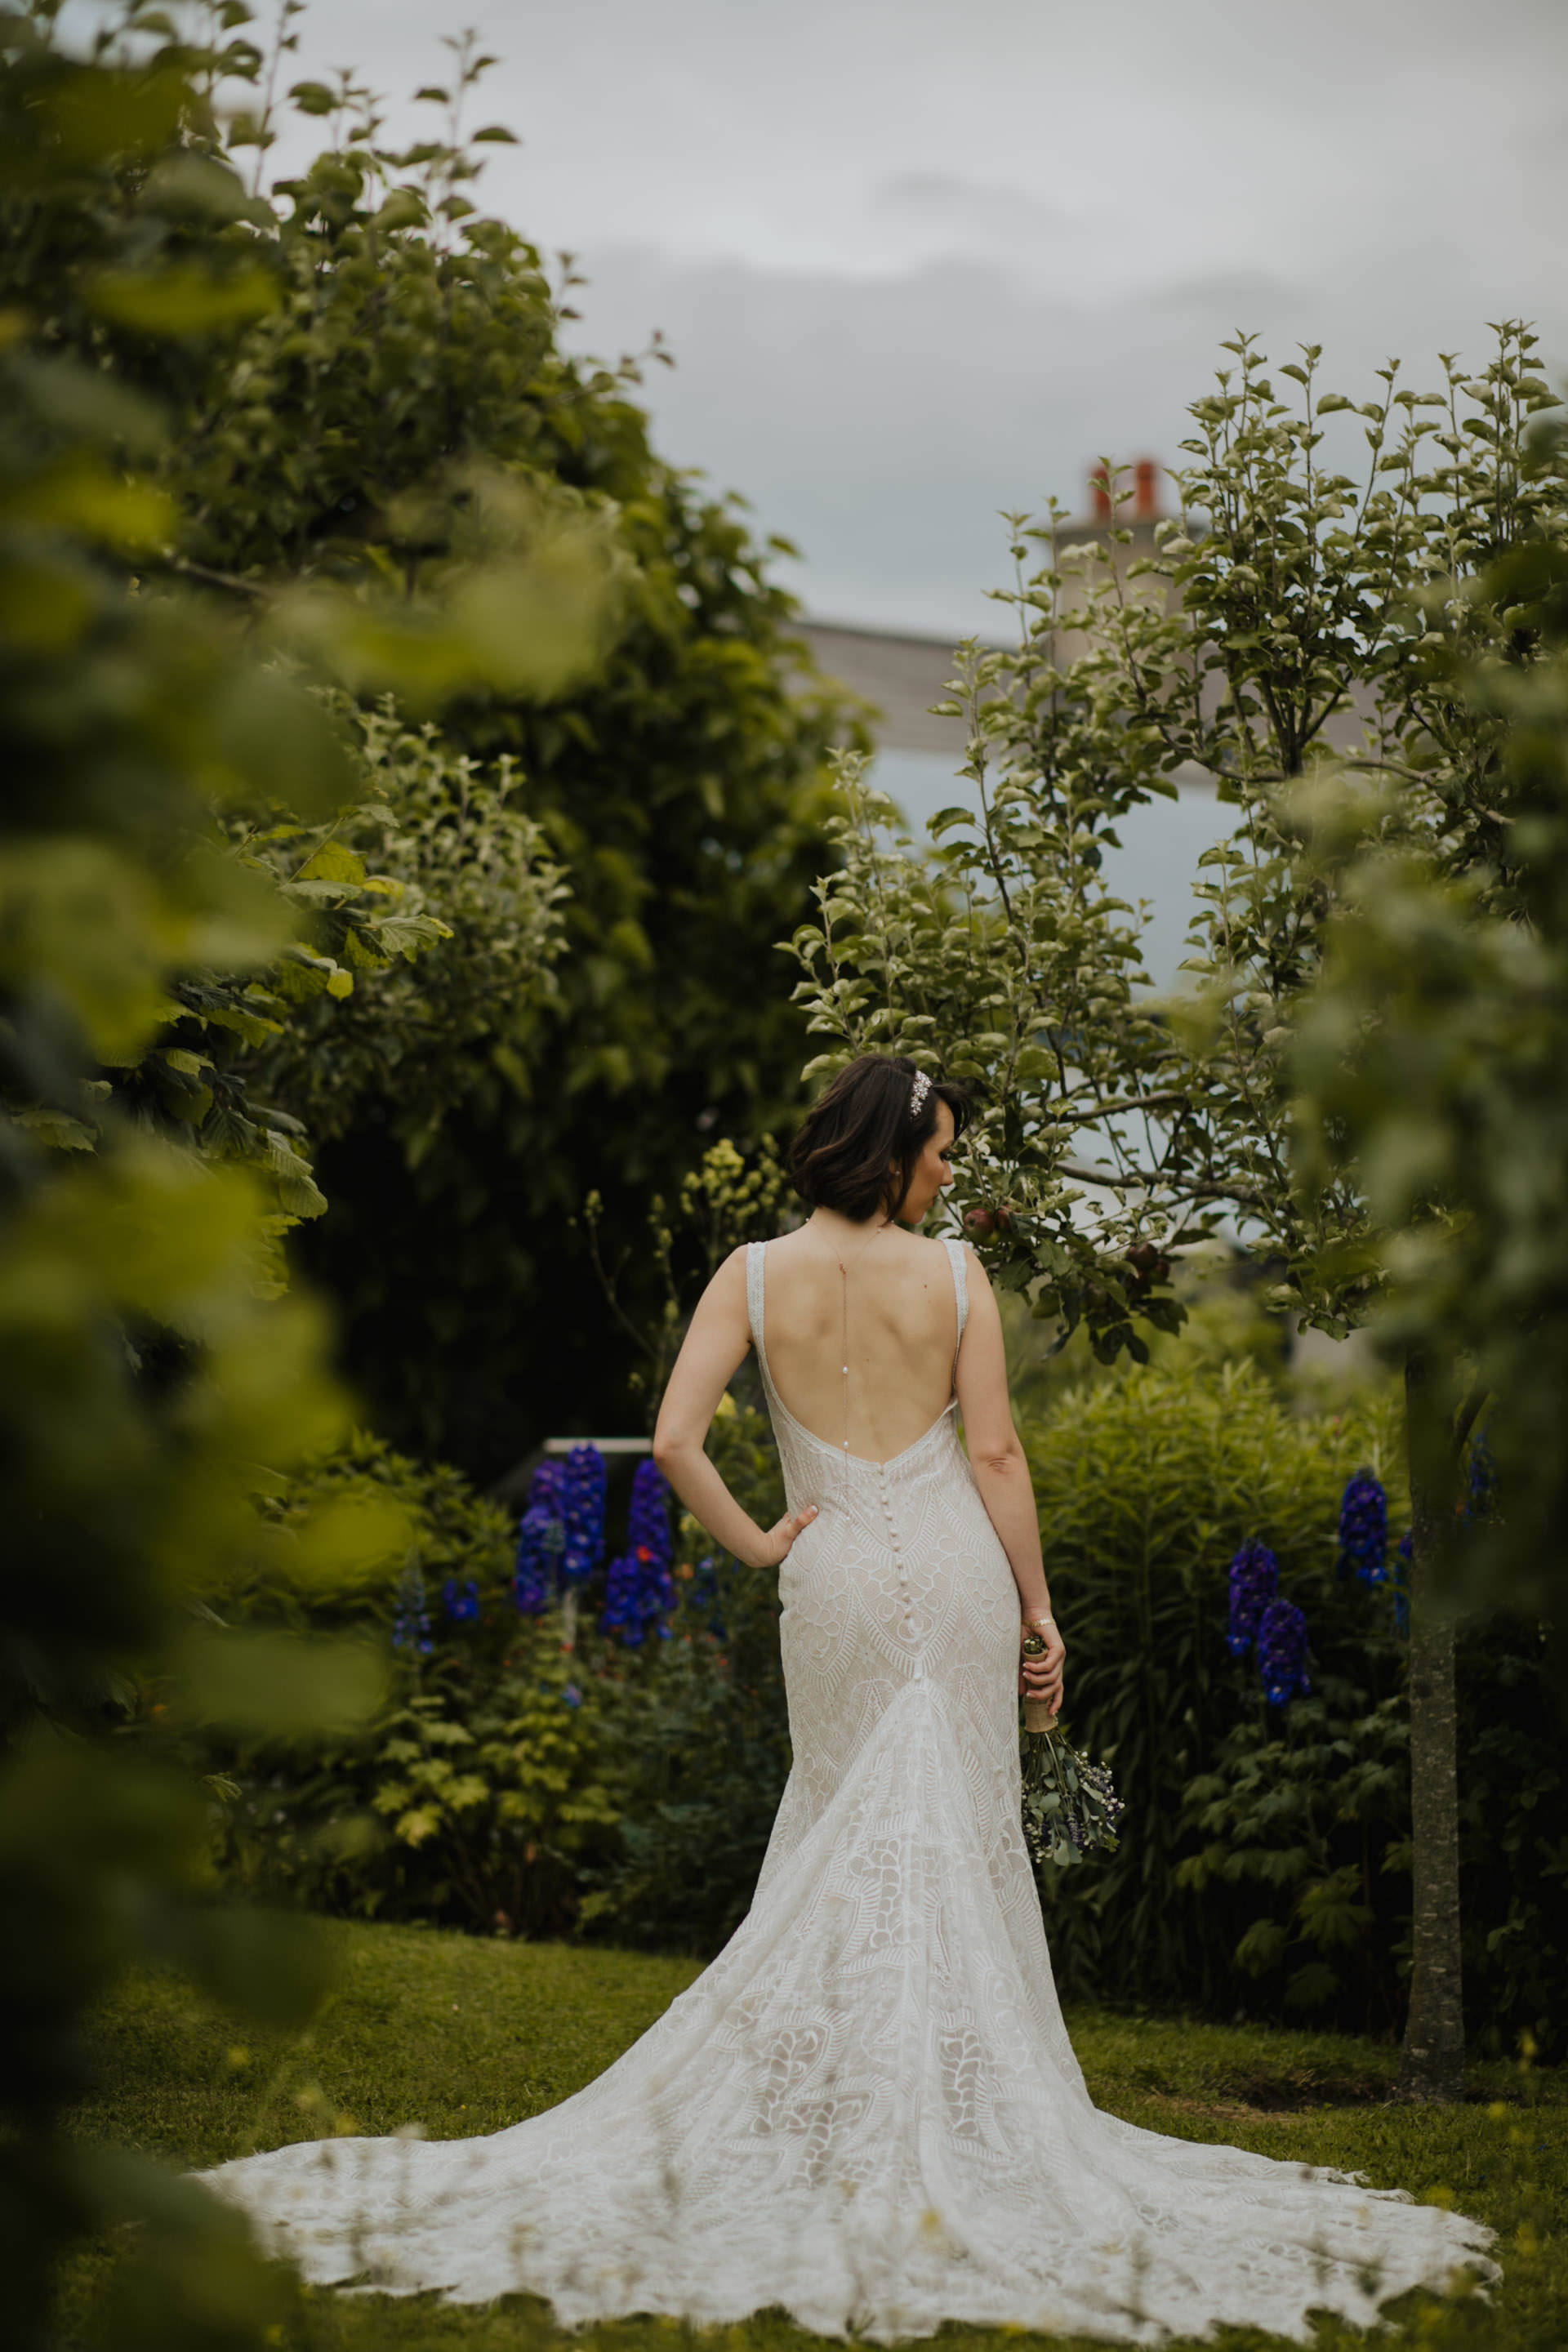 j&c_rothe_house_kilkenny_wedding_photographer_livia_figueiredo_22.jpg